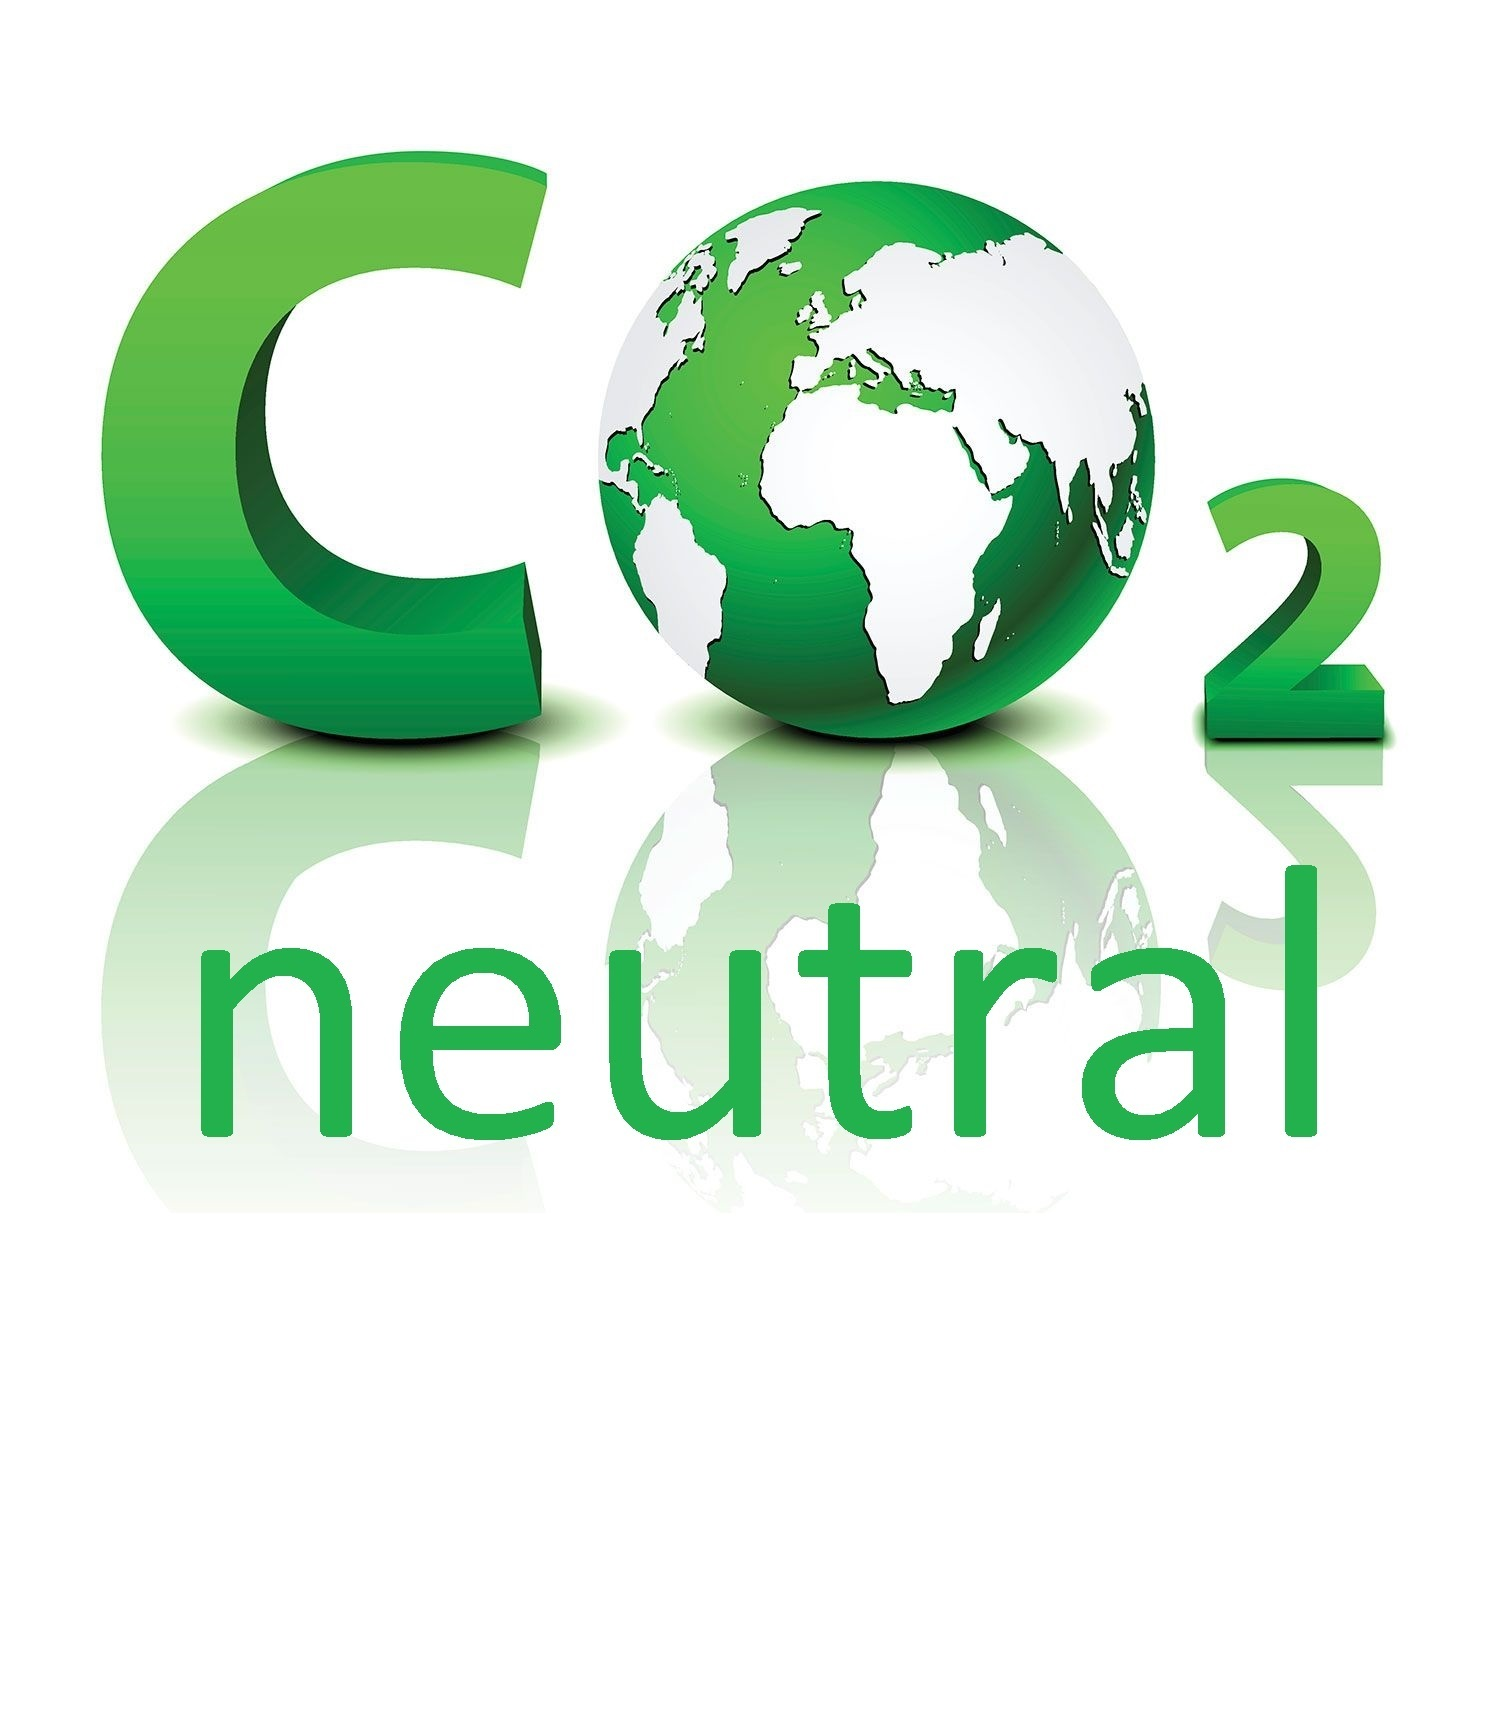 co2 neutral1